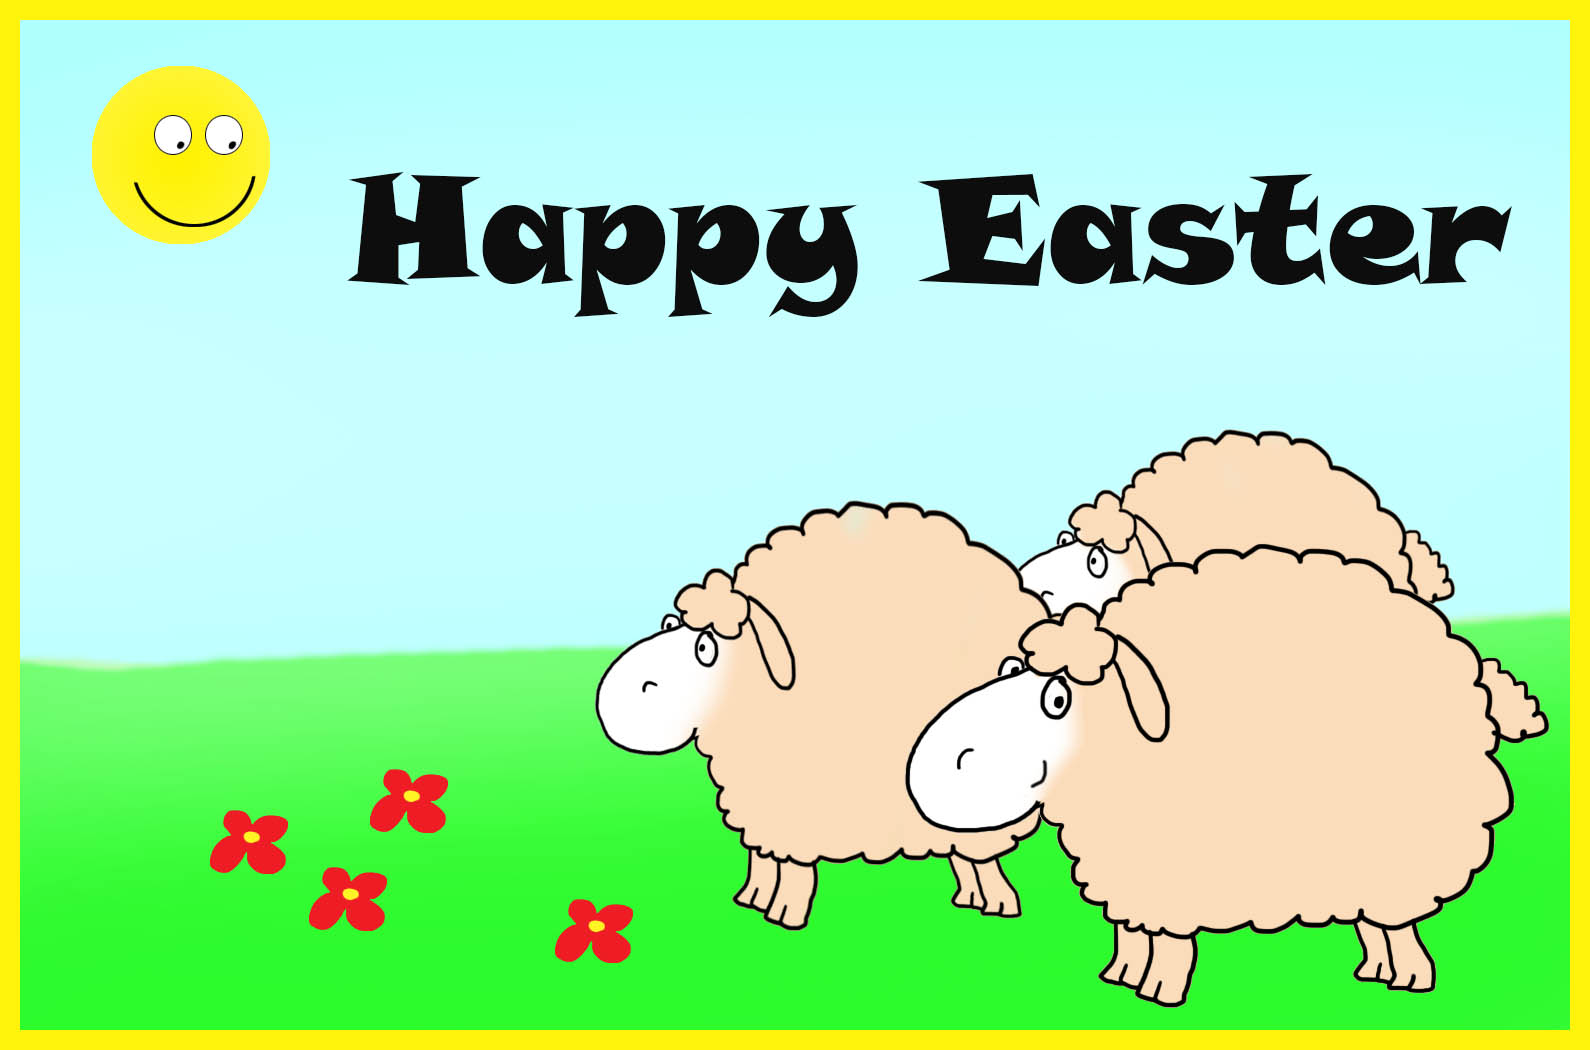 Happy Easter card with sun and sheep